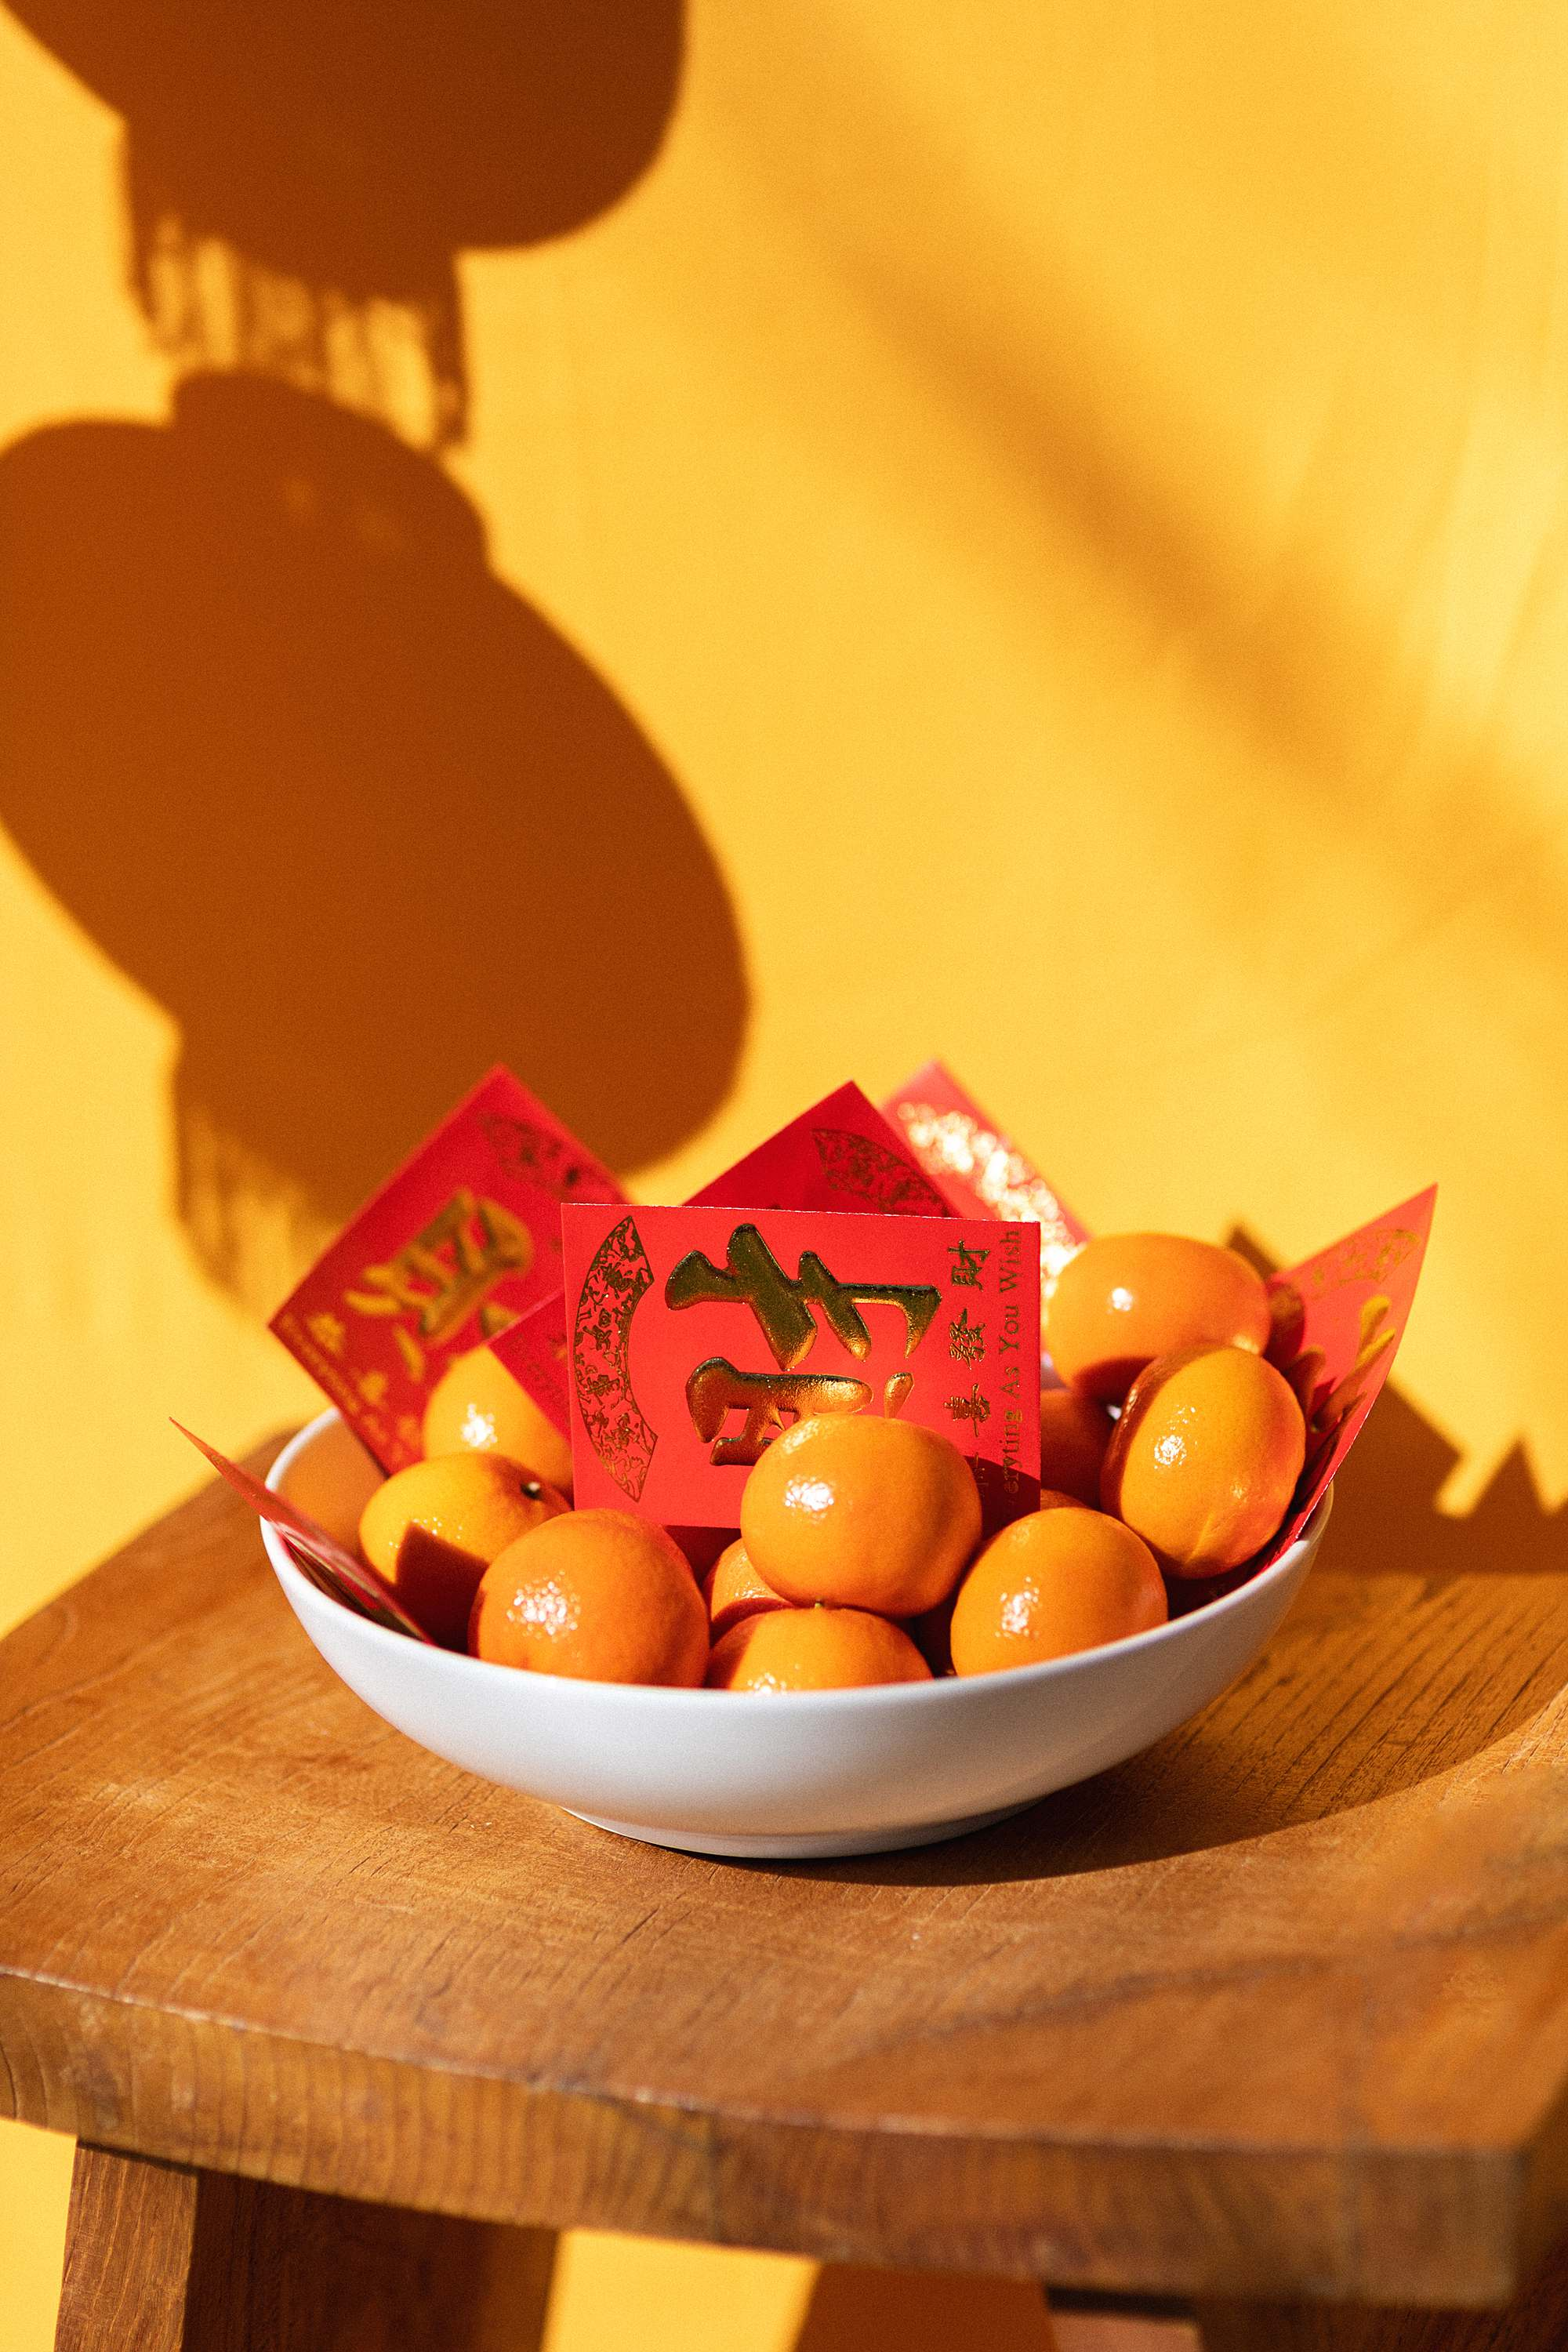 mandarin oranges in a bowl with red envelopes Chinese New Year - Chinese New Year lunar new year outfit and festivities - growing up Asian American blog post - DianaElizabethblog.com